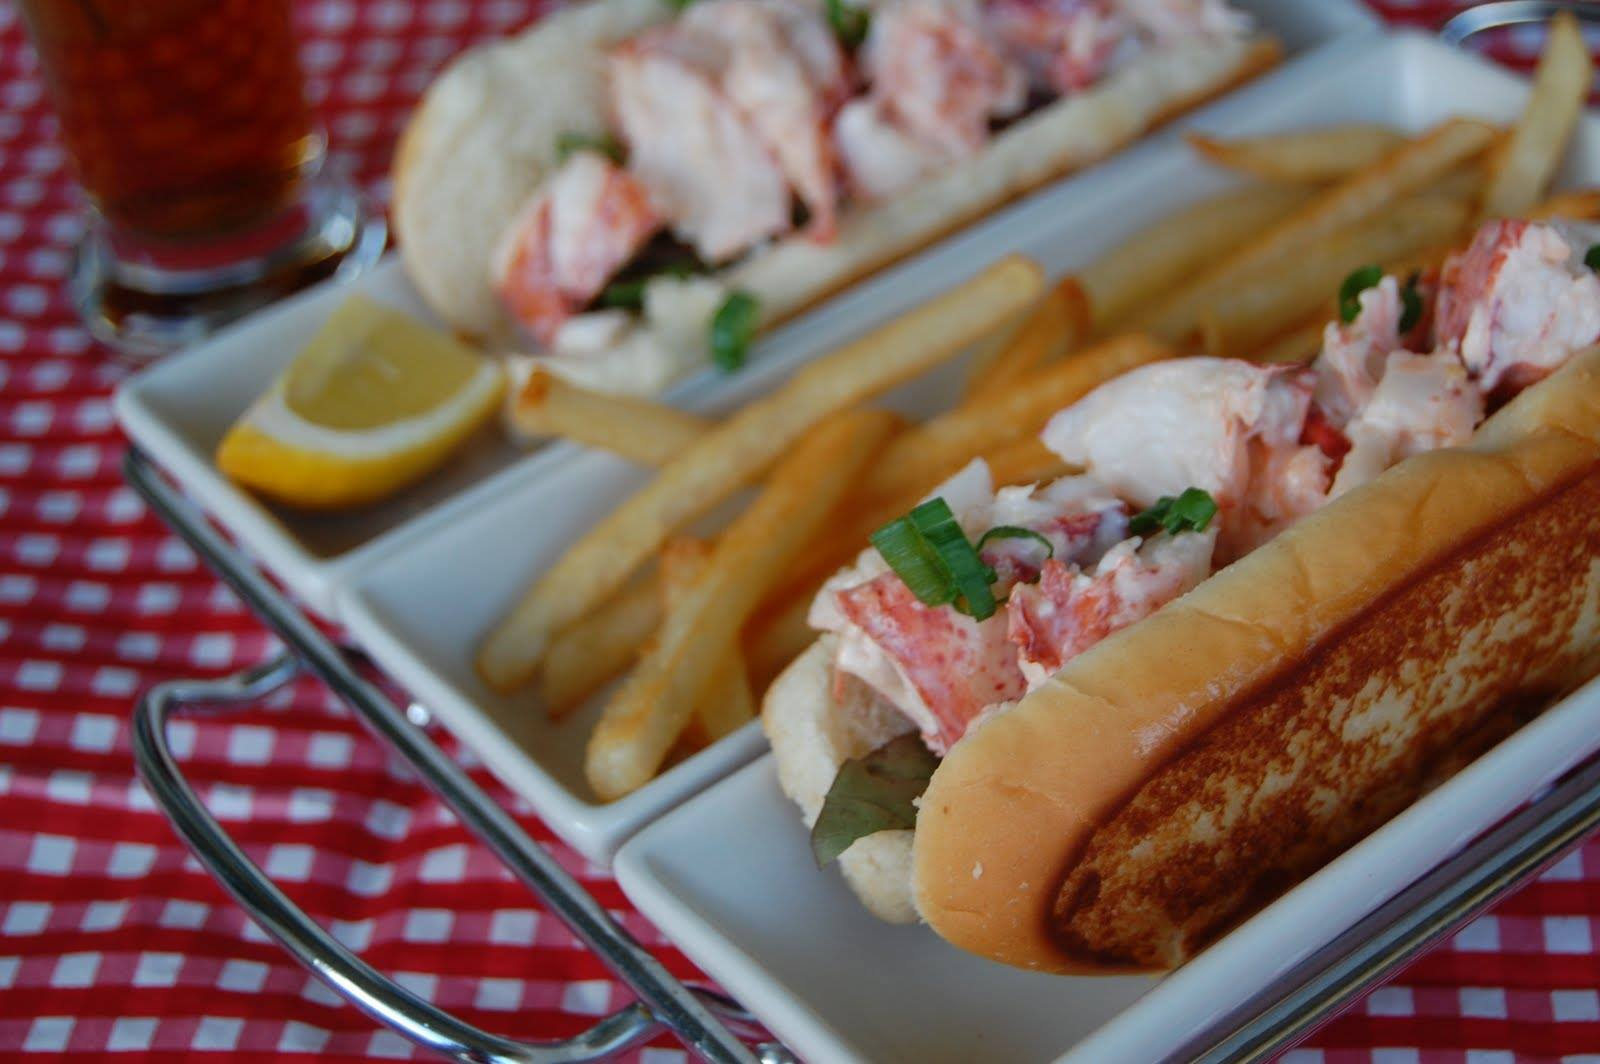 Enjoy the Florida take on a New England favorite: lobster rolls, presumably prepared with the local spiny lobsters.